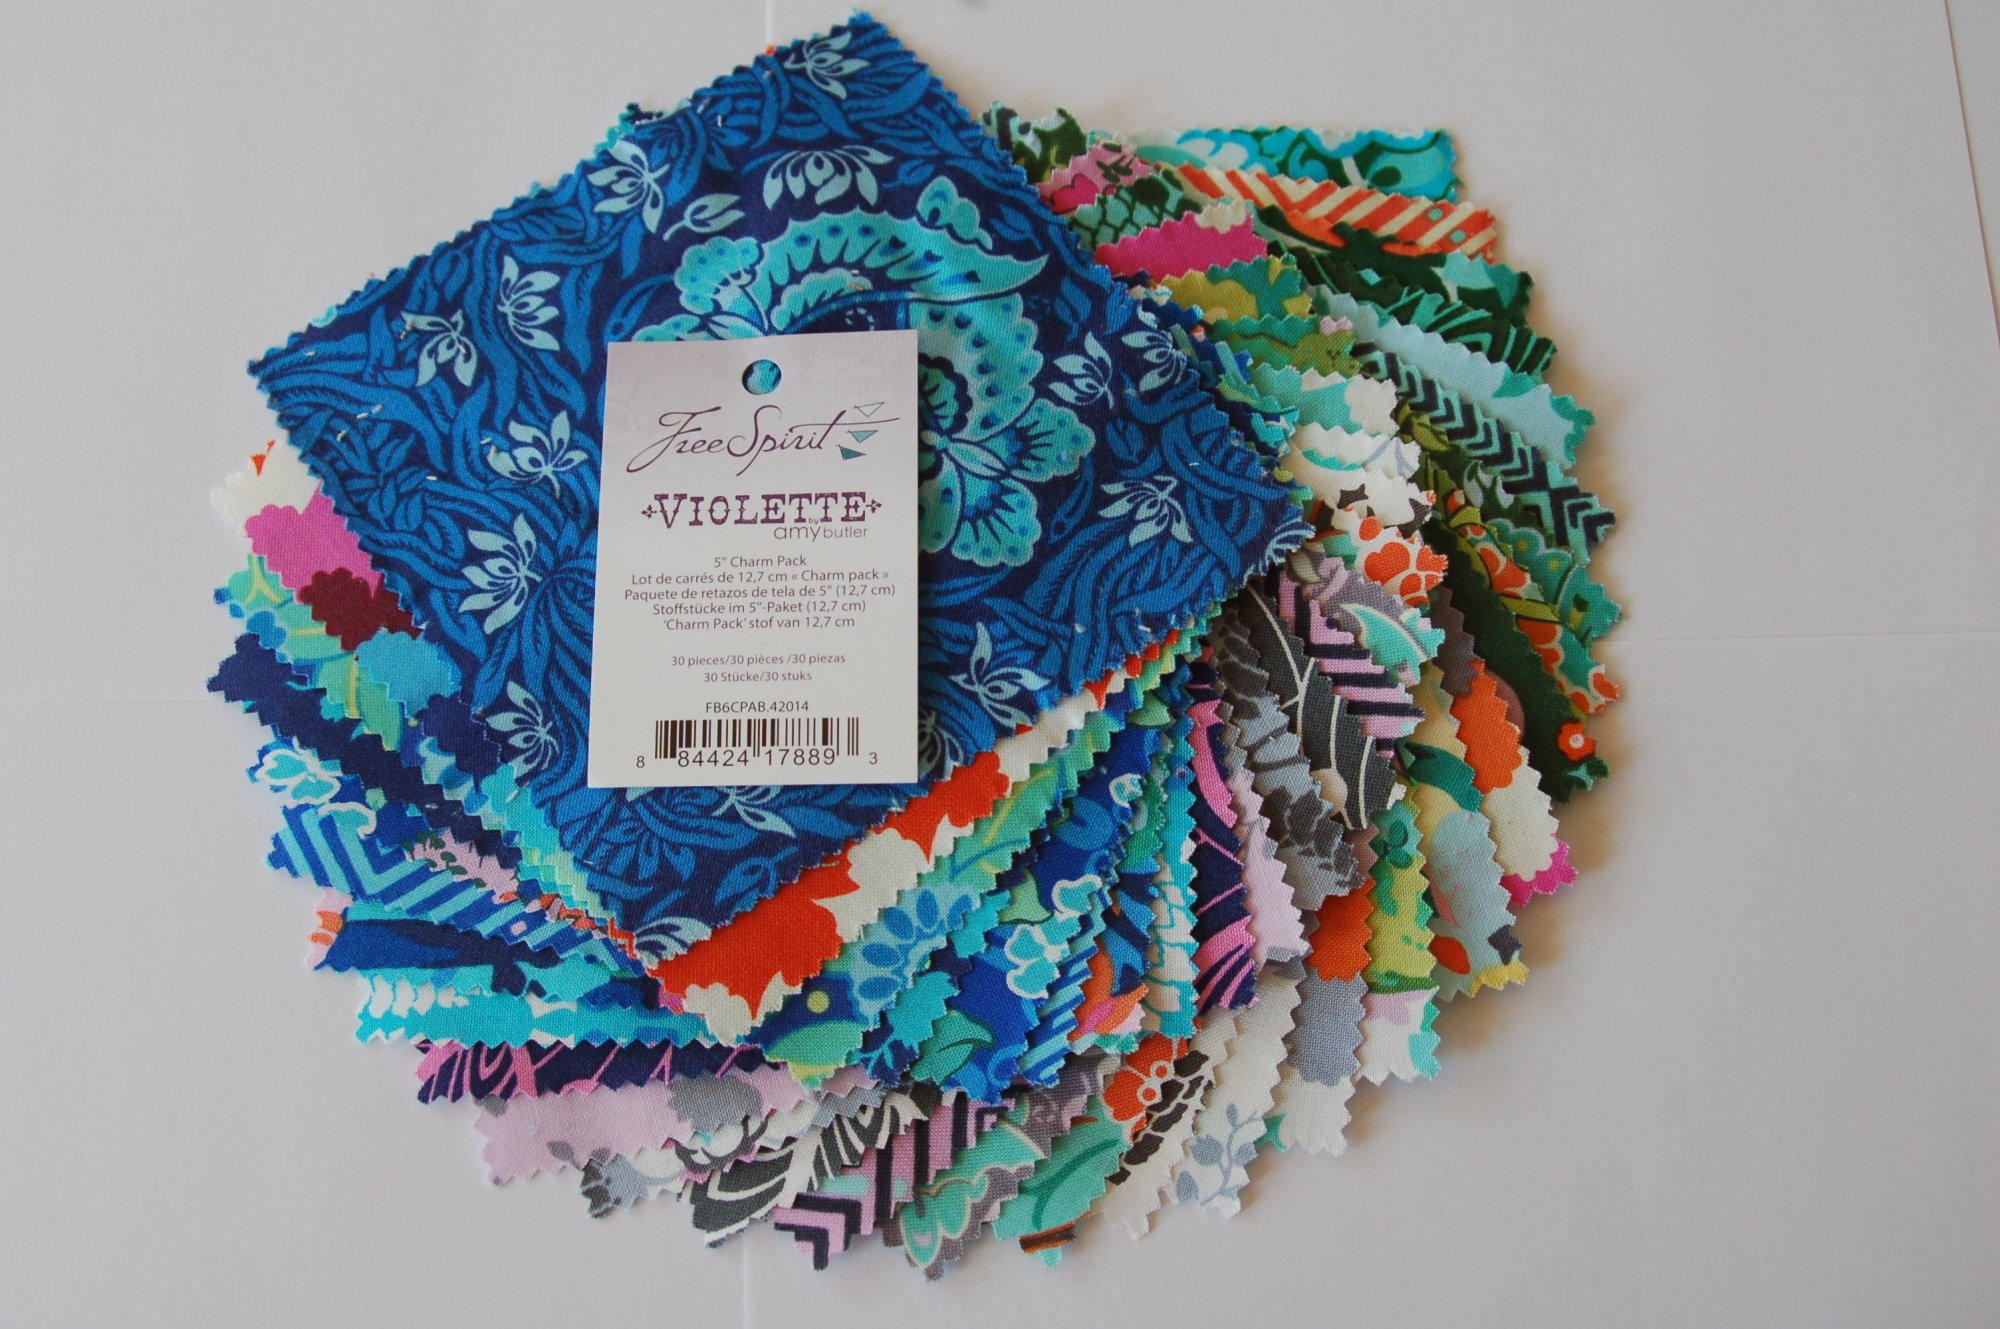 Violette (5 Stacker) by Amy Butler for Free Spirit